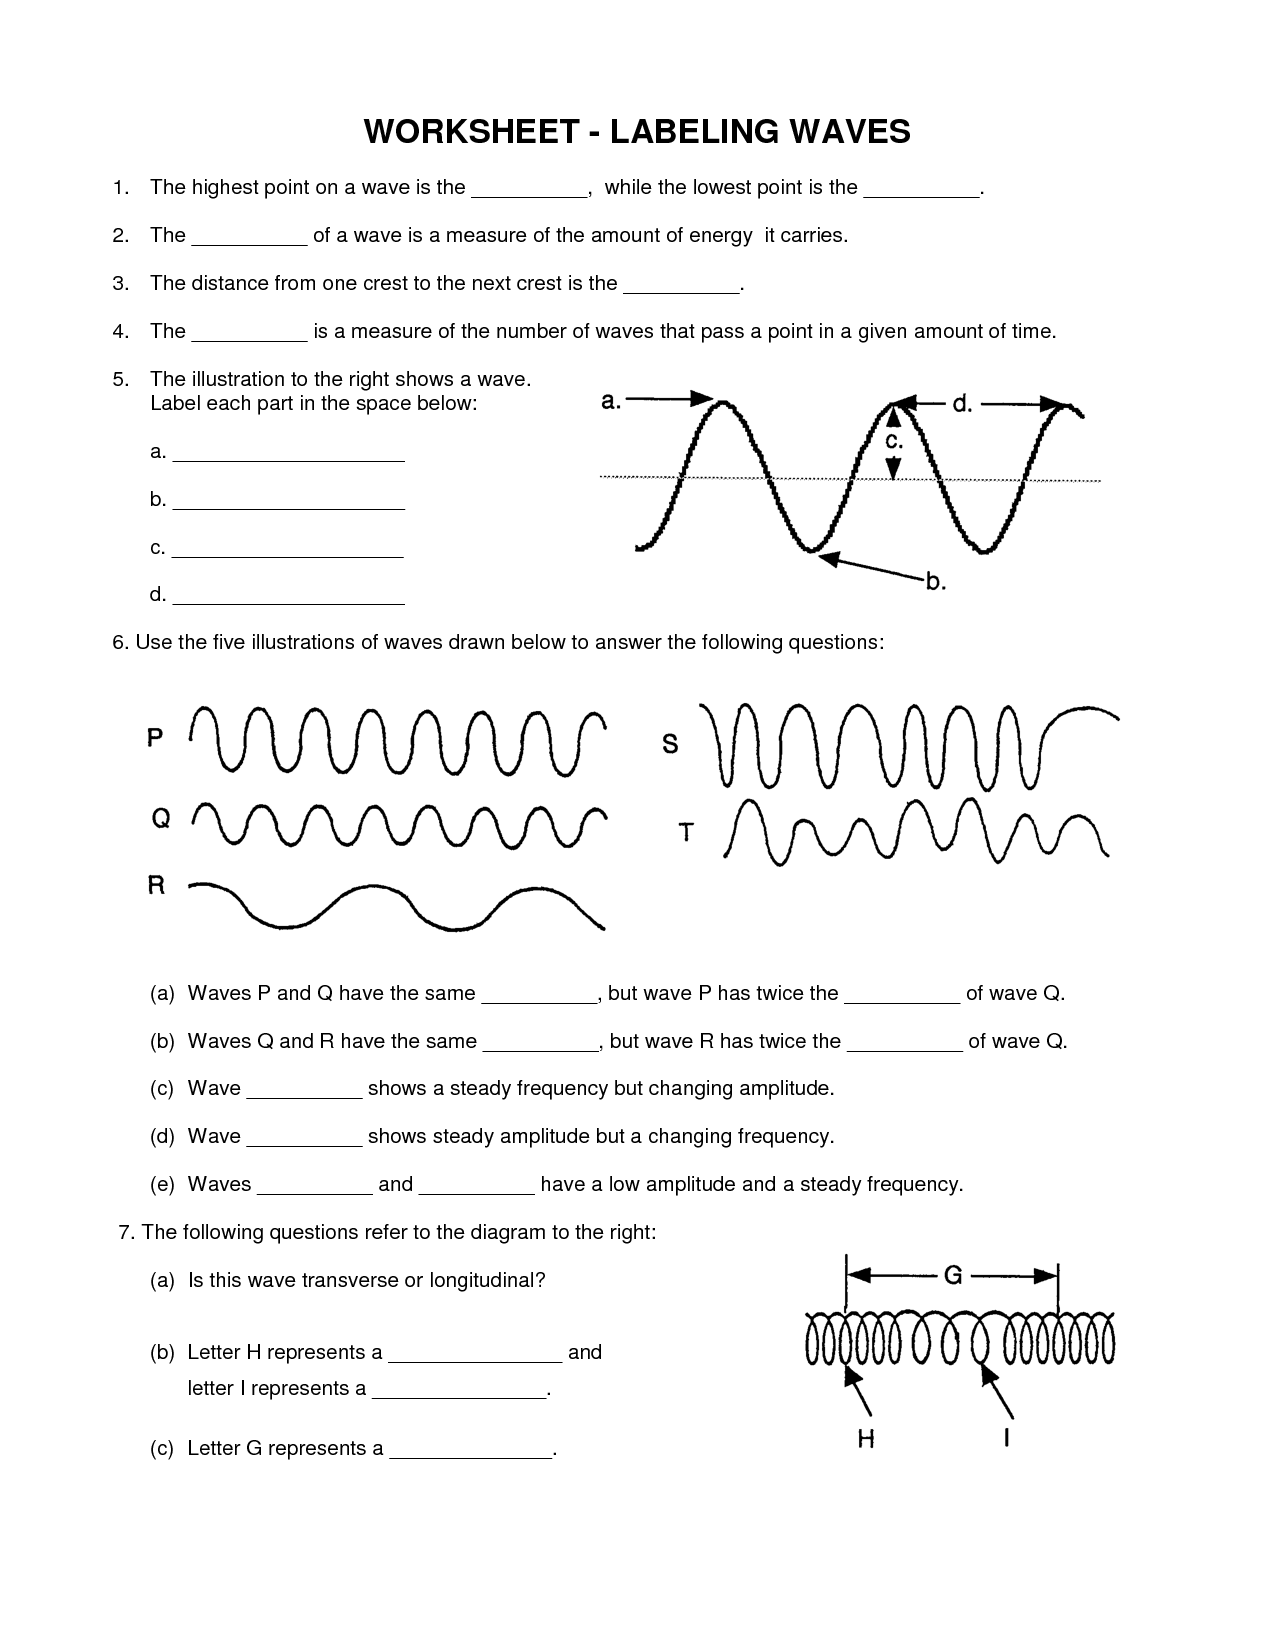 Physical Science Waves Worksheet Answers